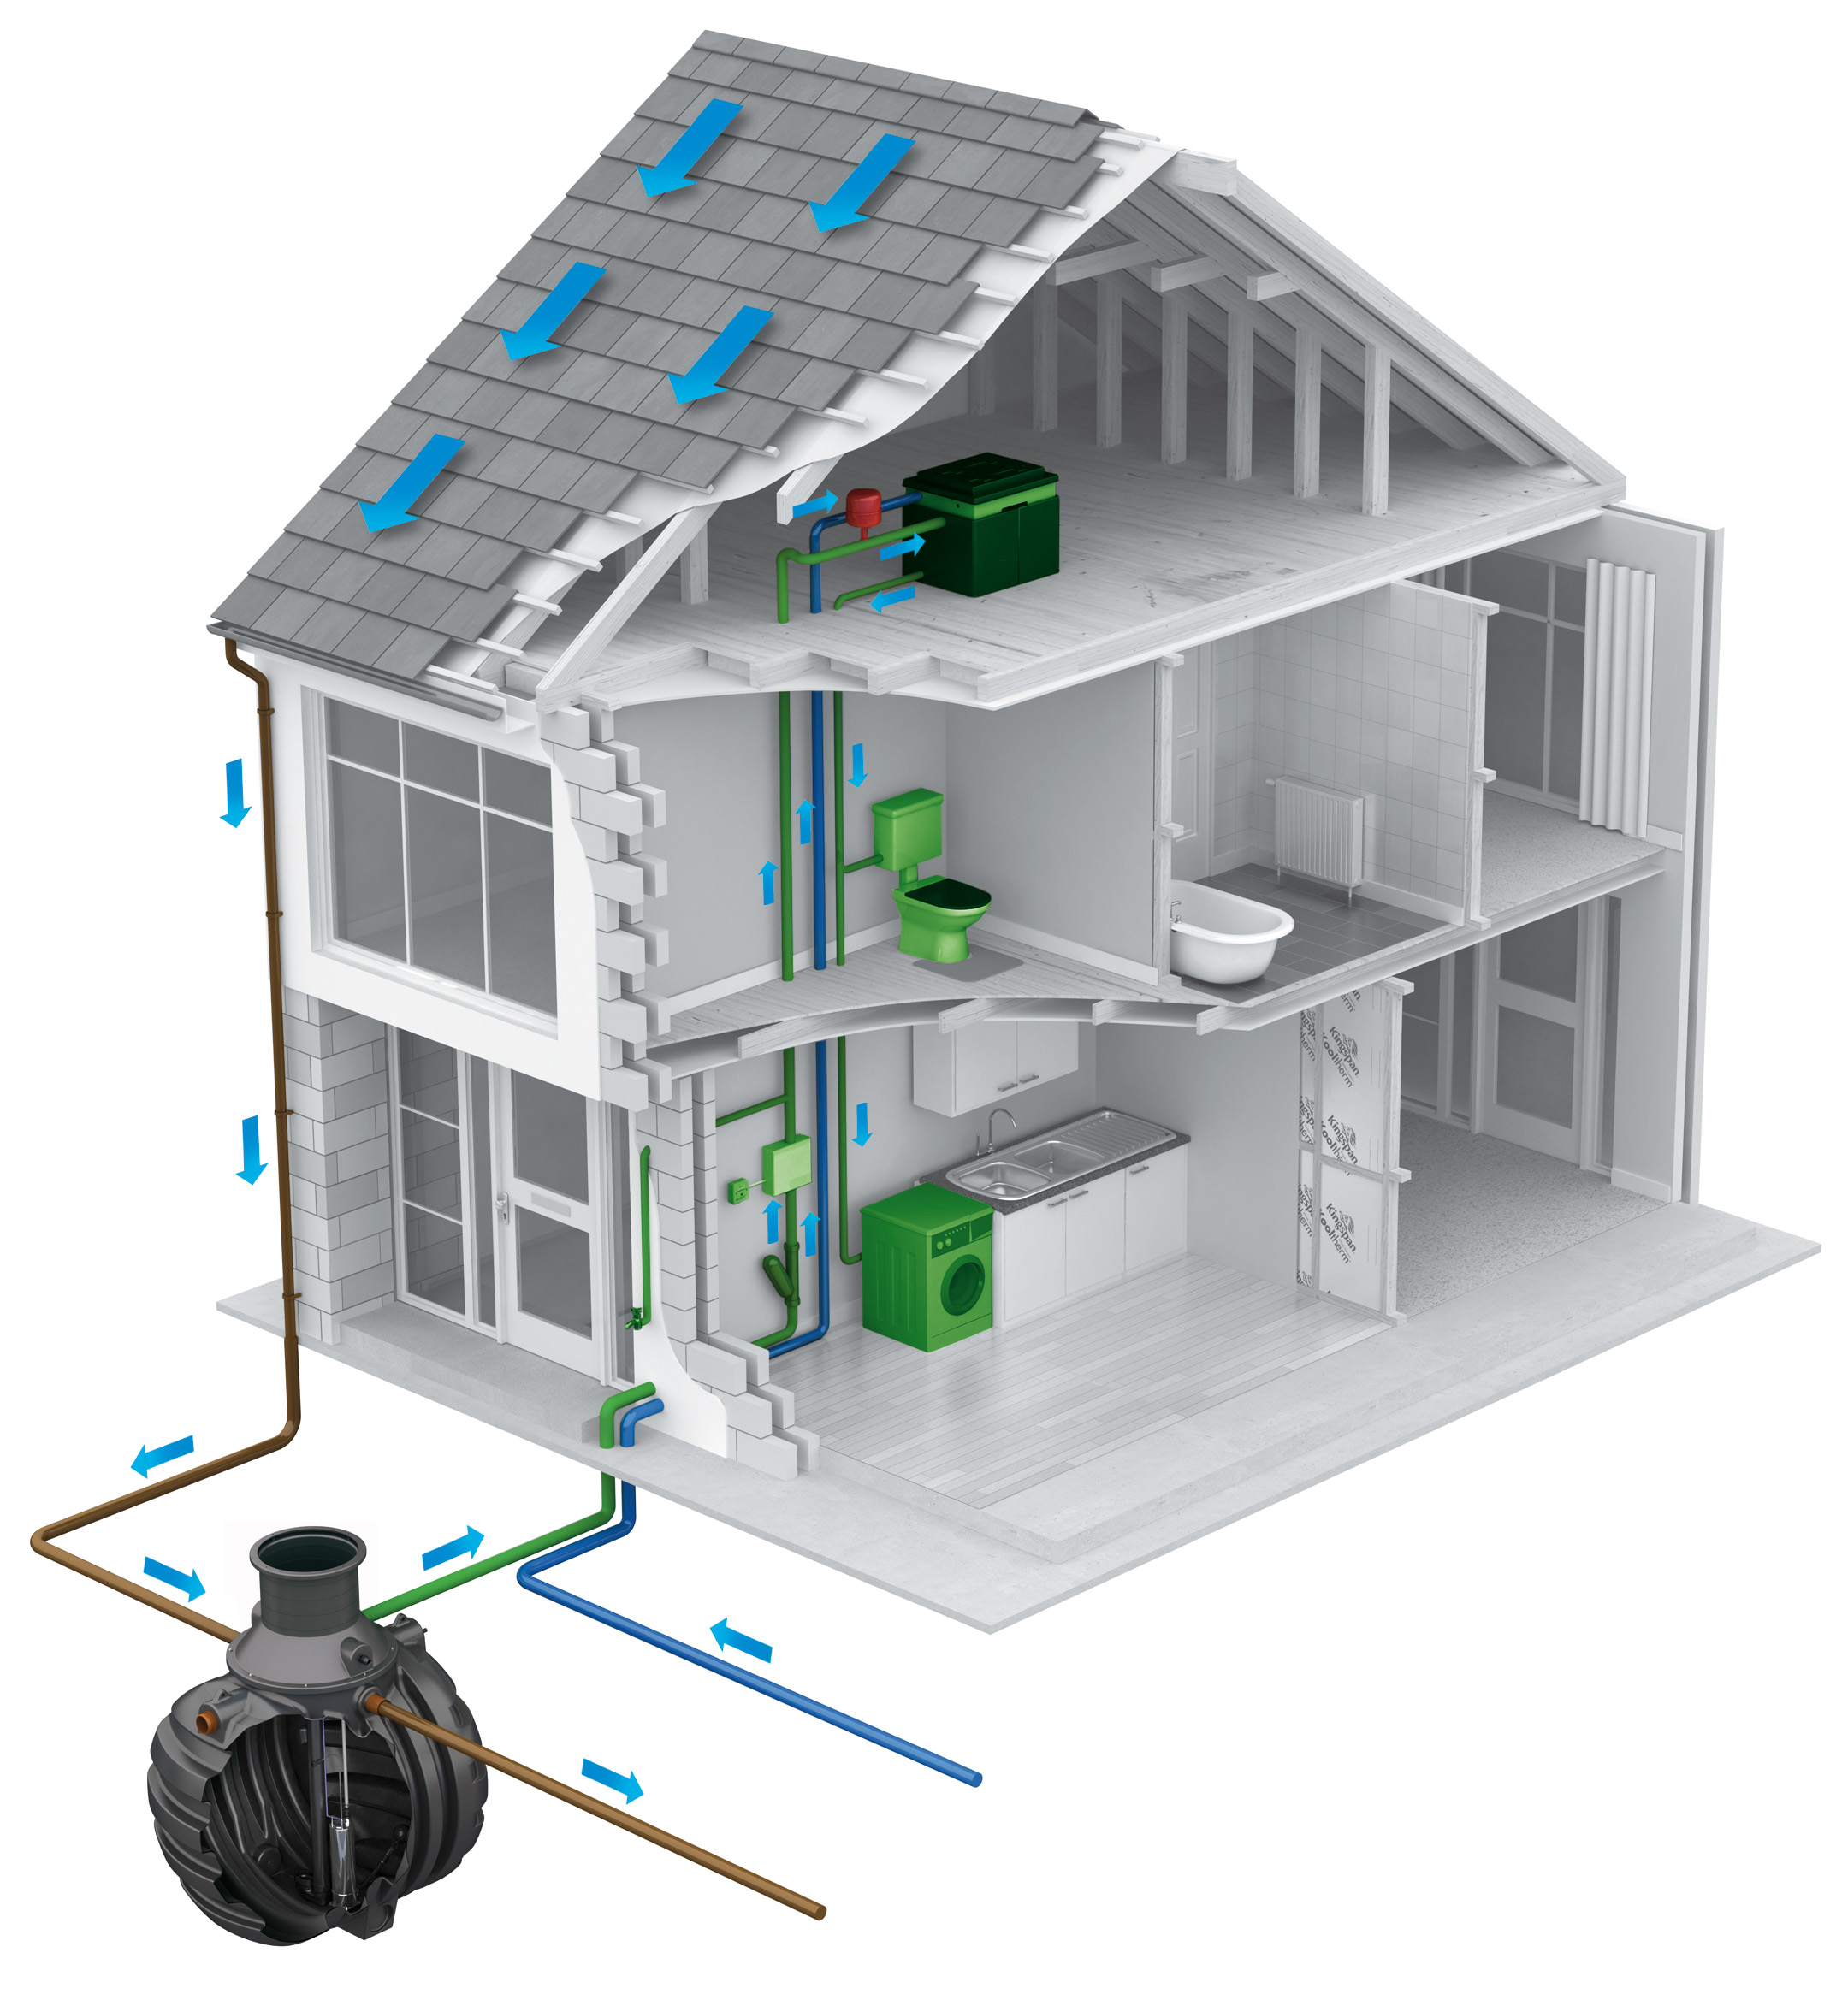 Kingspan Water's gravity-fed Envireau rainwater harvesting system in a domestic setting